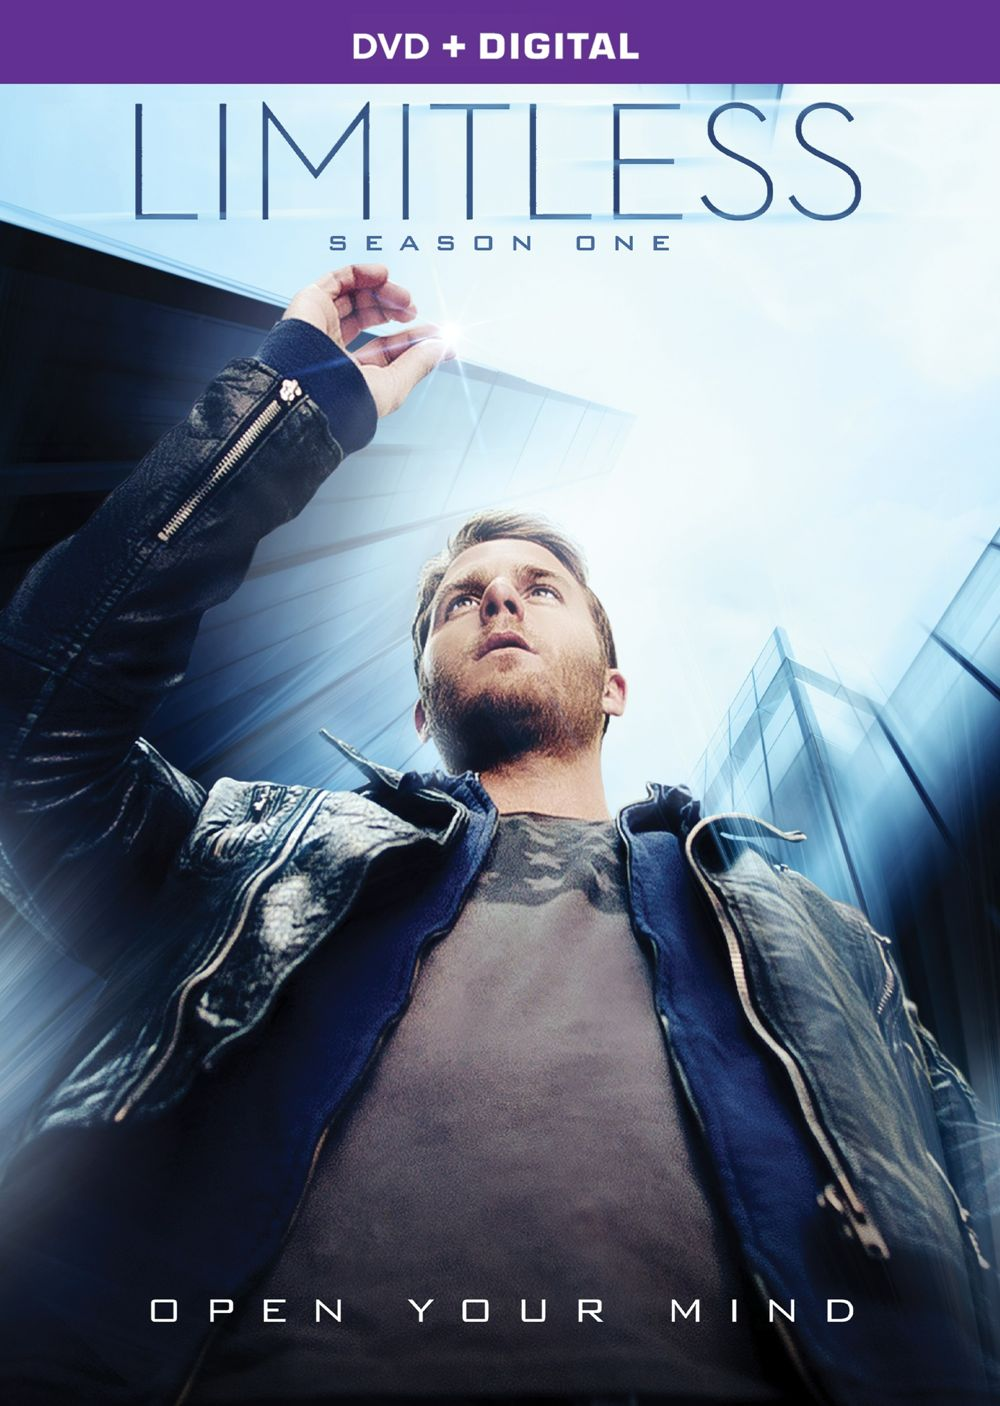 Limitless Season 1 DVD Cover